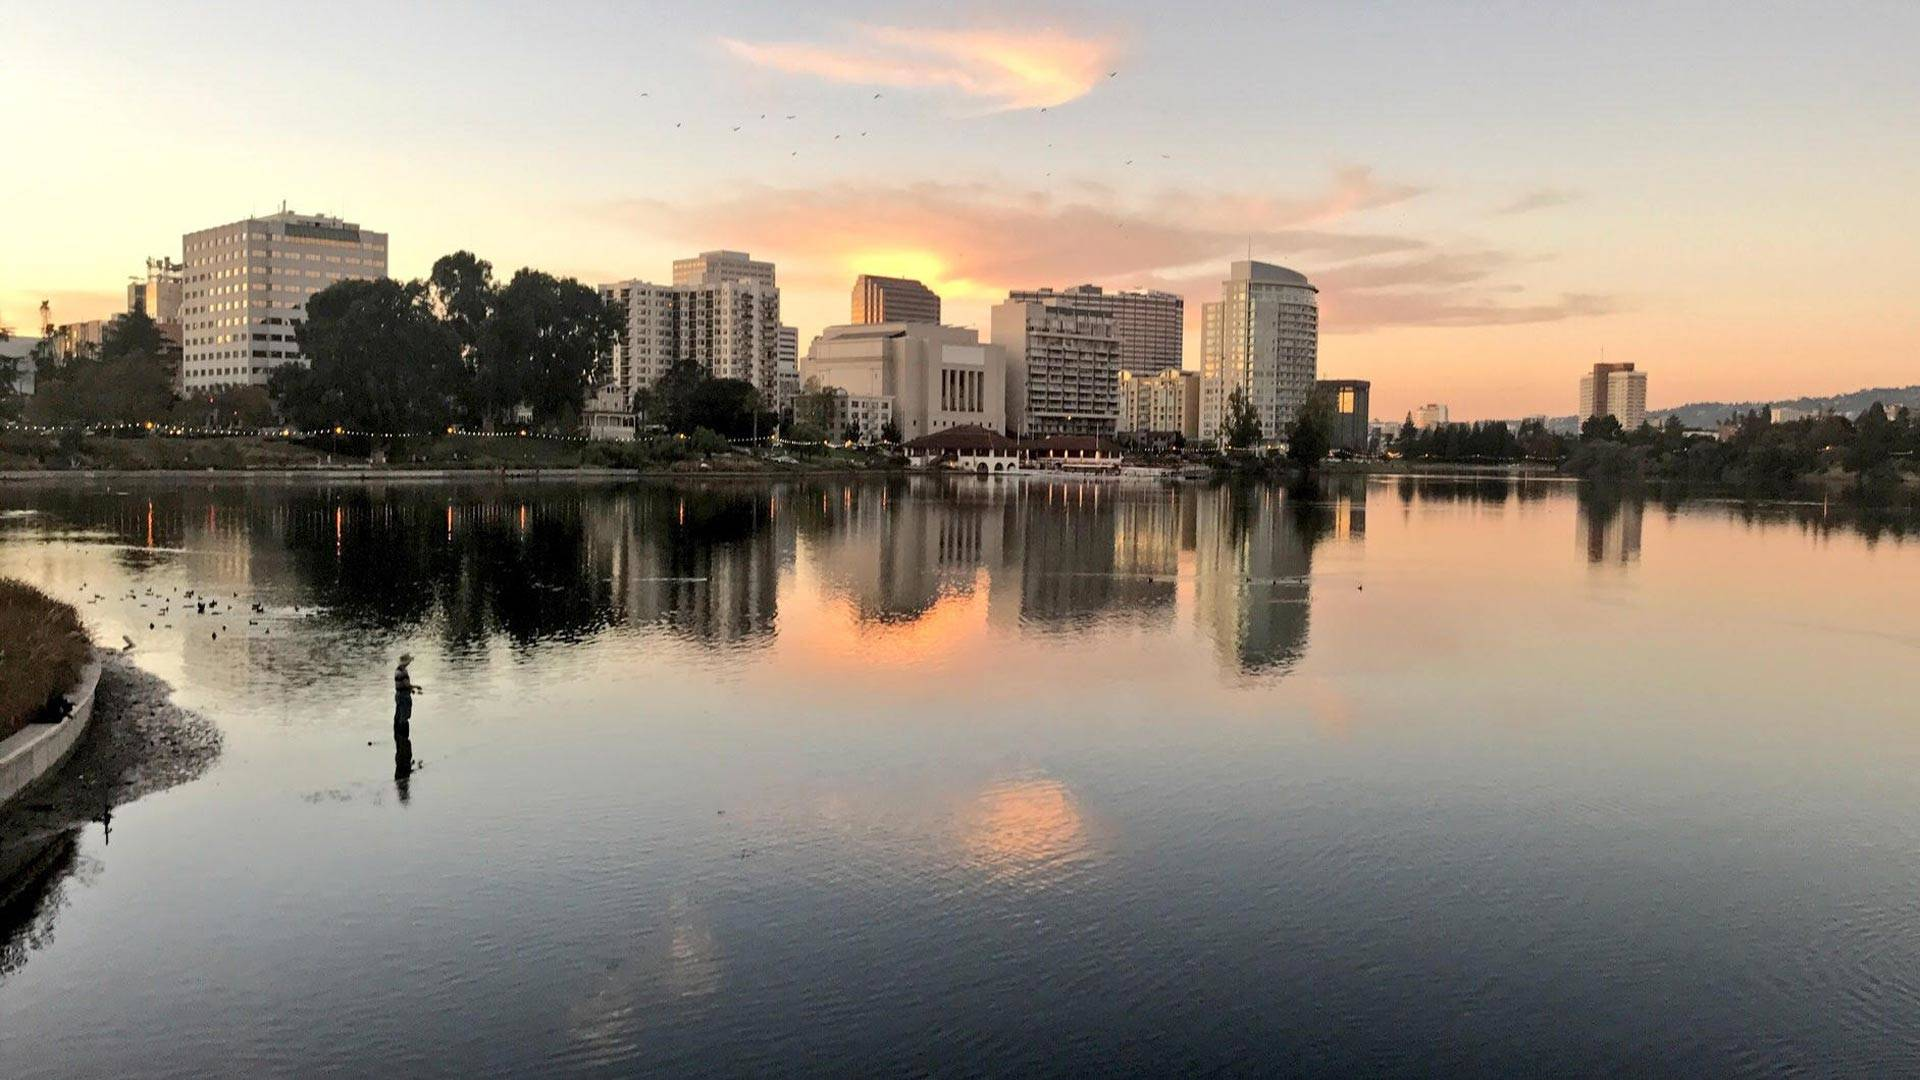 A fisherman casts his line in Lake Merritt.  Pendarvis Harshaw